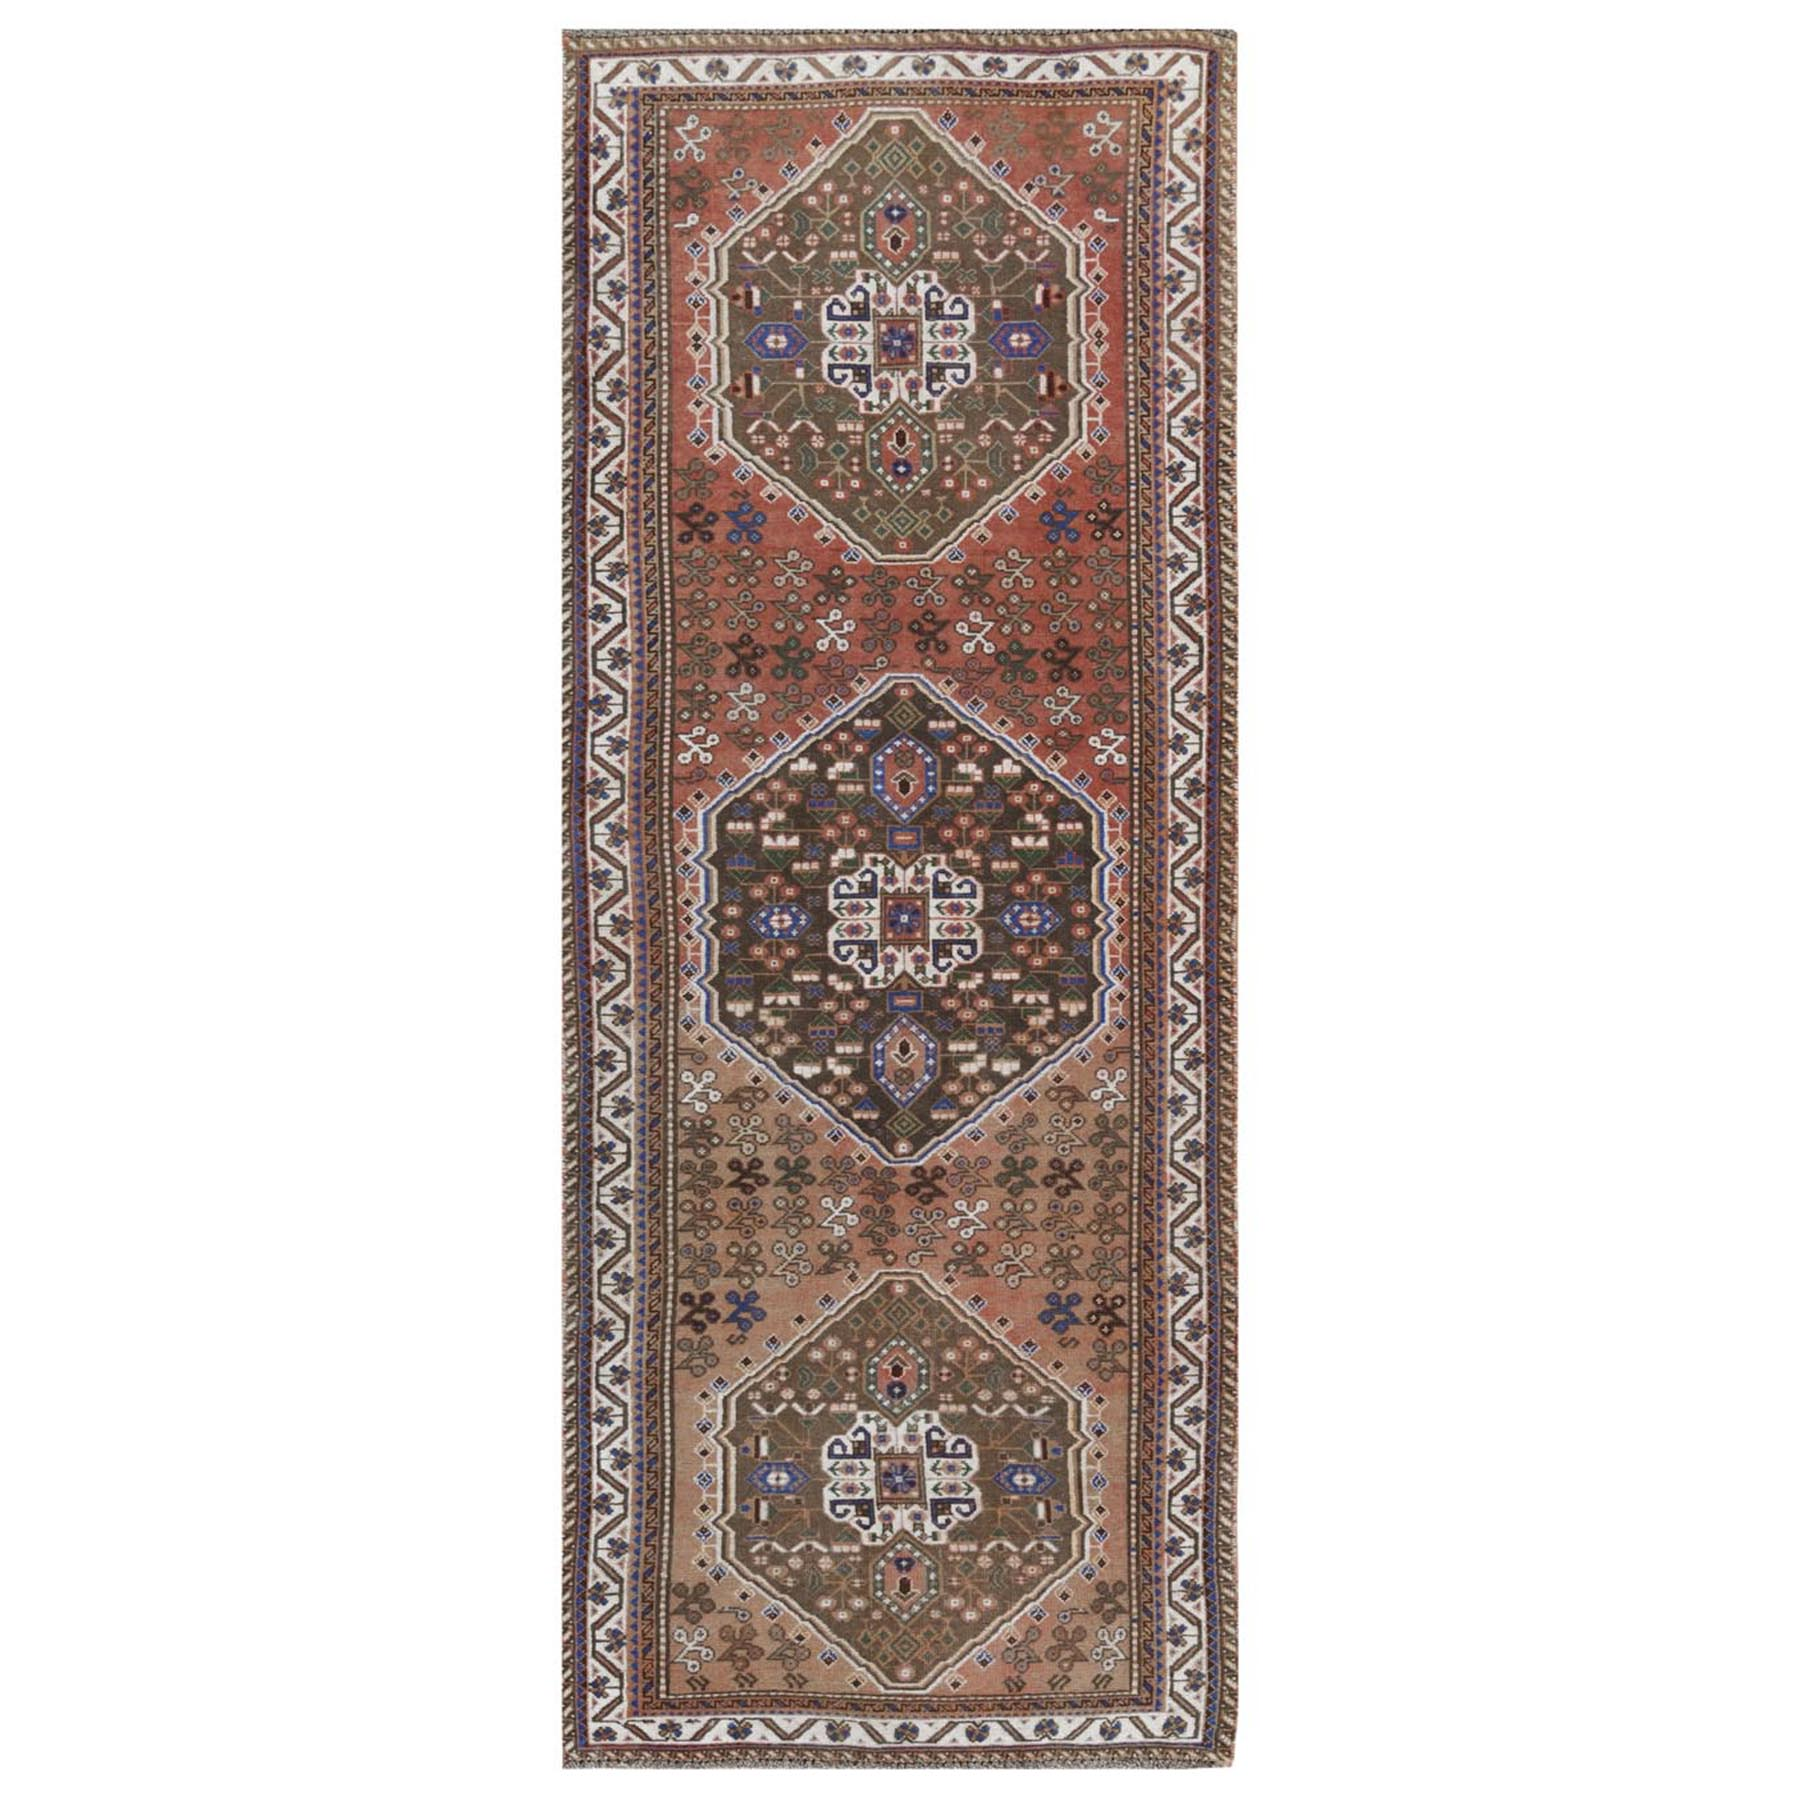 Fetneh Collection And Vintage Overdyed Collection Hand Knotted Red Rug No: 1115942